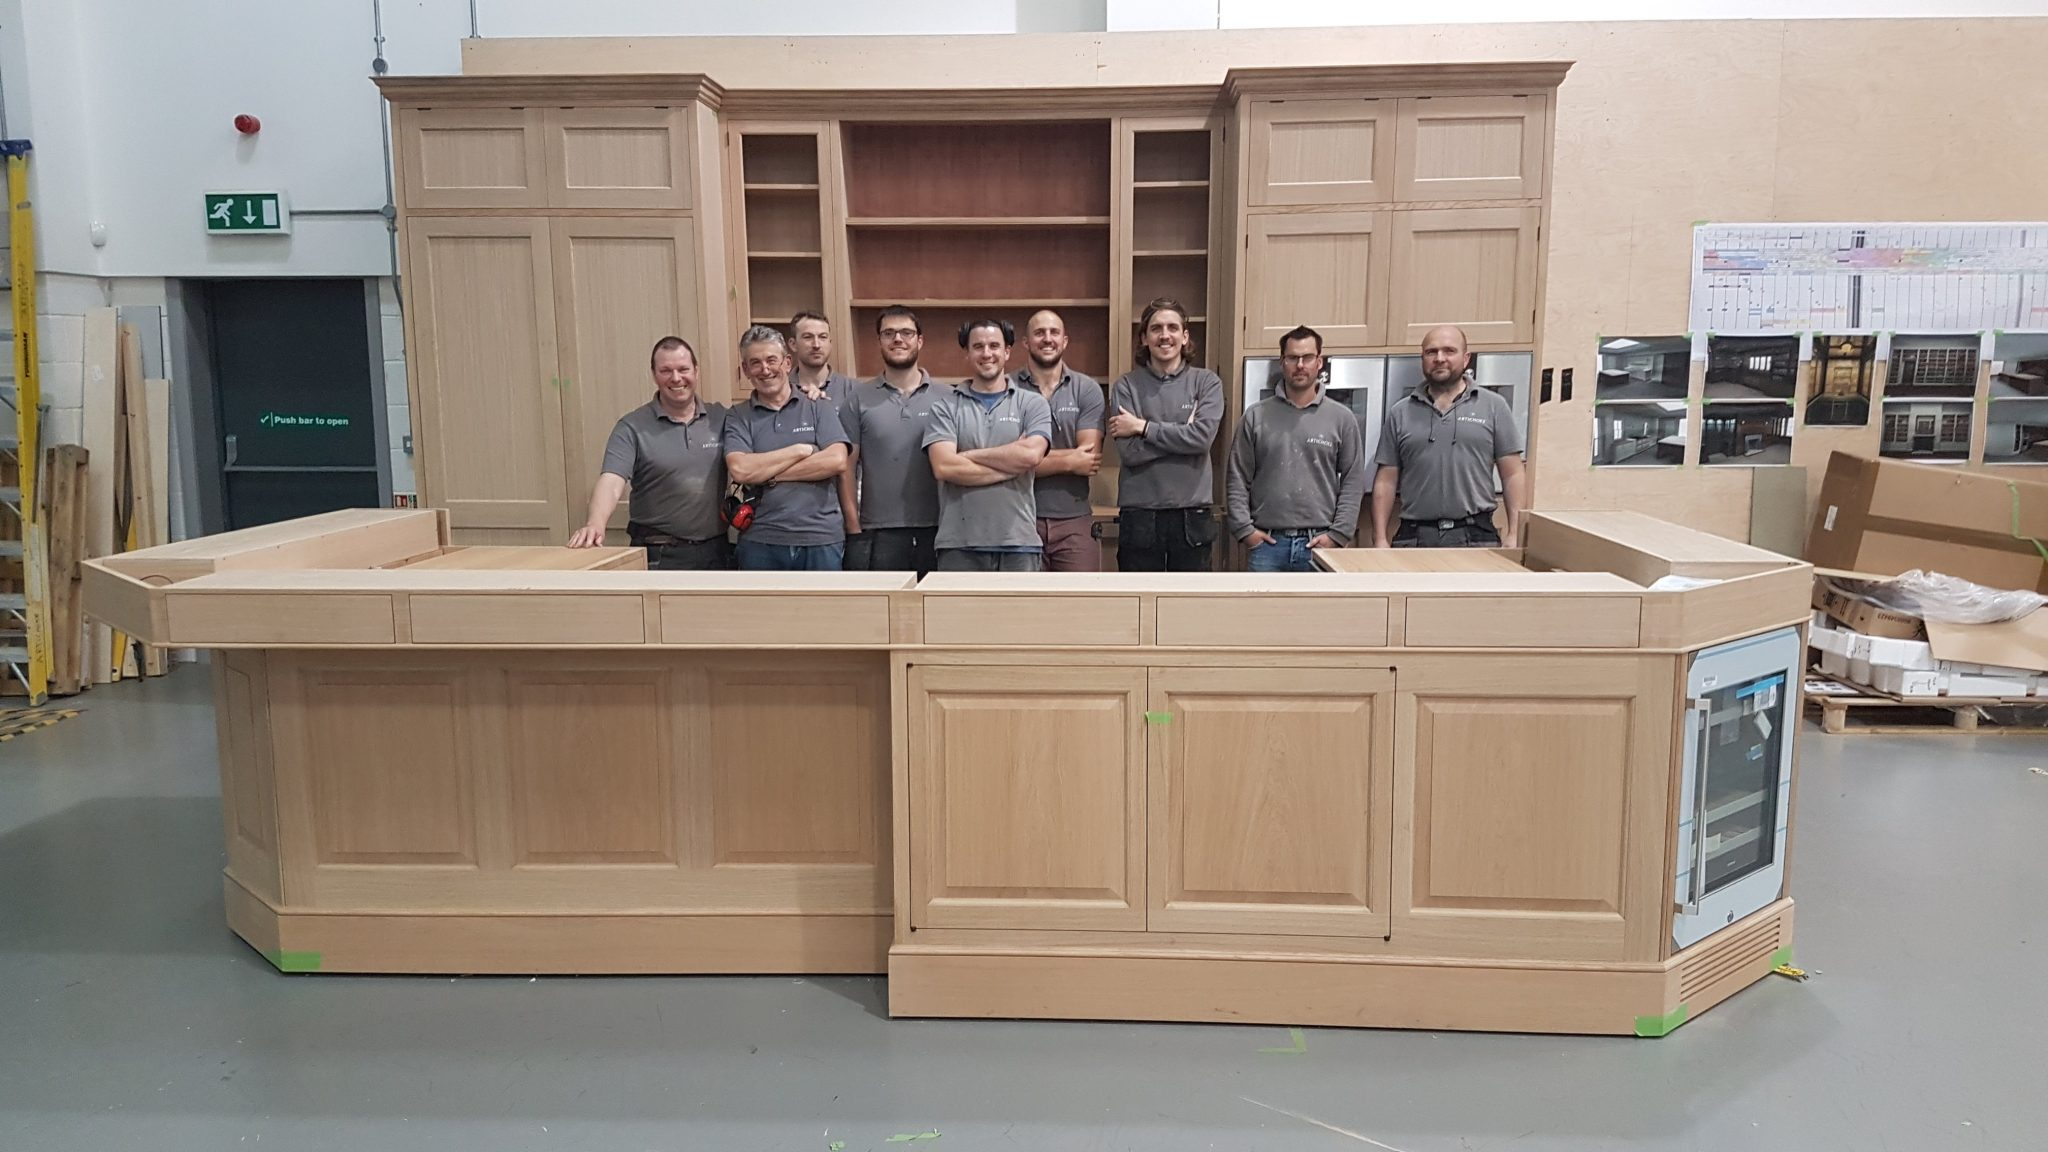 Kitchen cabinet makers behind their work